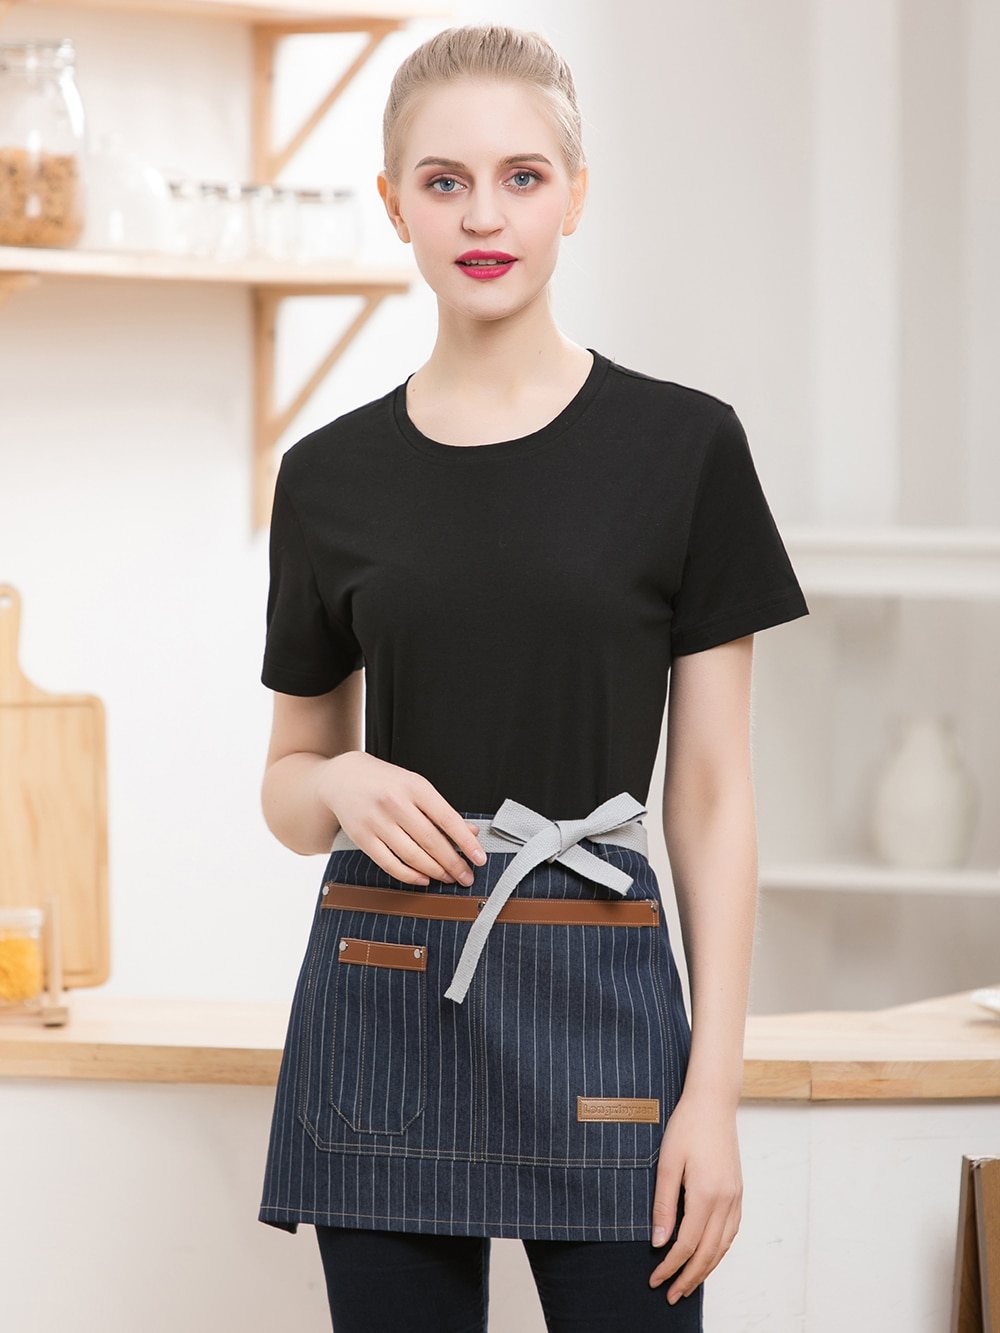 High Quality Hot Sale Chef Aprons Kitchen Hotel Coffee Shop Bakery Waiter Aprons with Pockets Cook Work Wear Chef Uniforms apron geometric style hot sale high quality cotton waterproof women aprons adjustable sleeveless kitchen cooking aprons